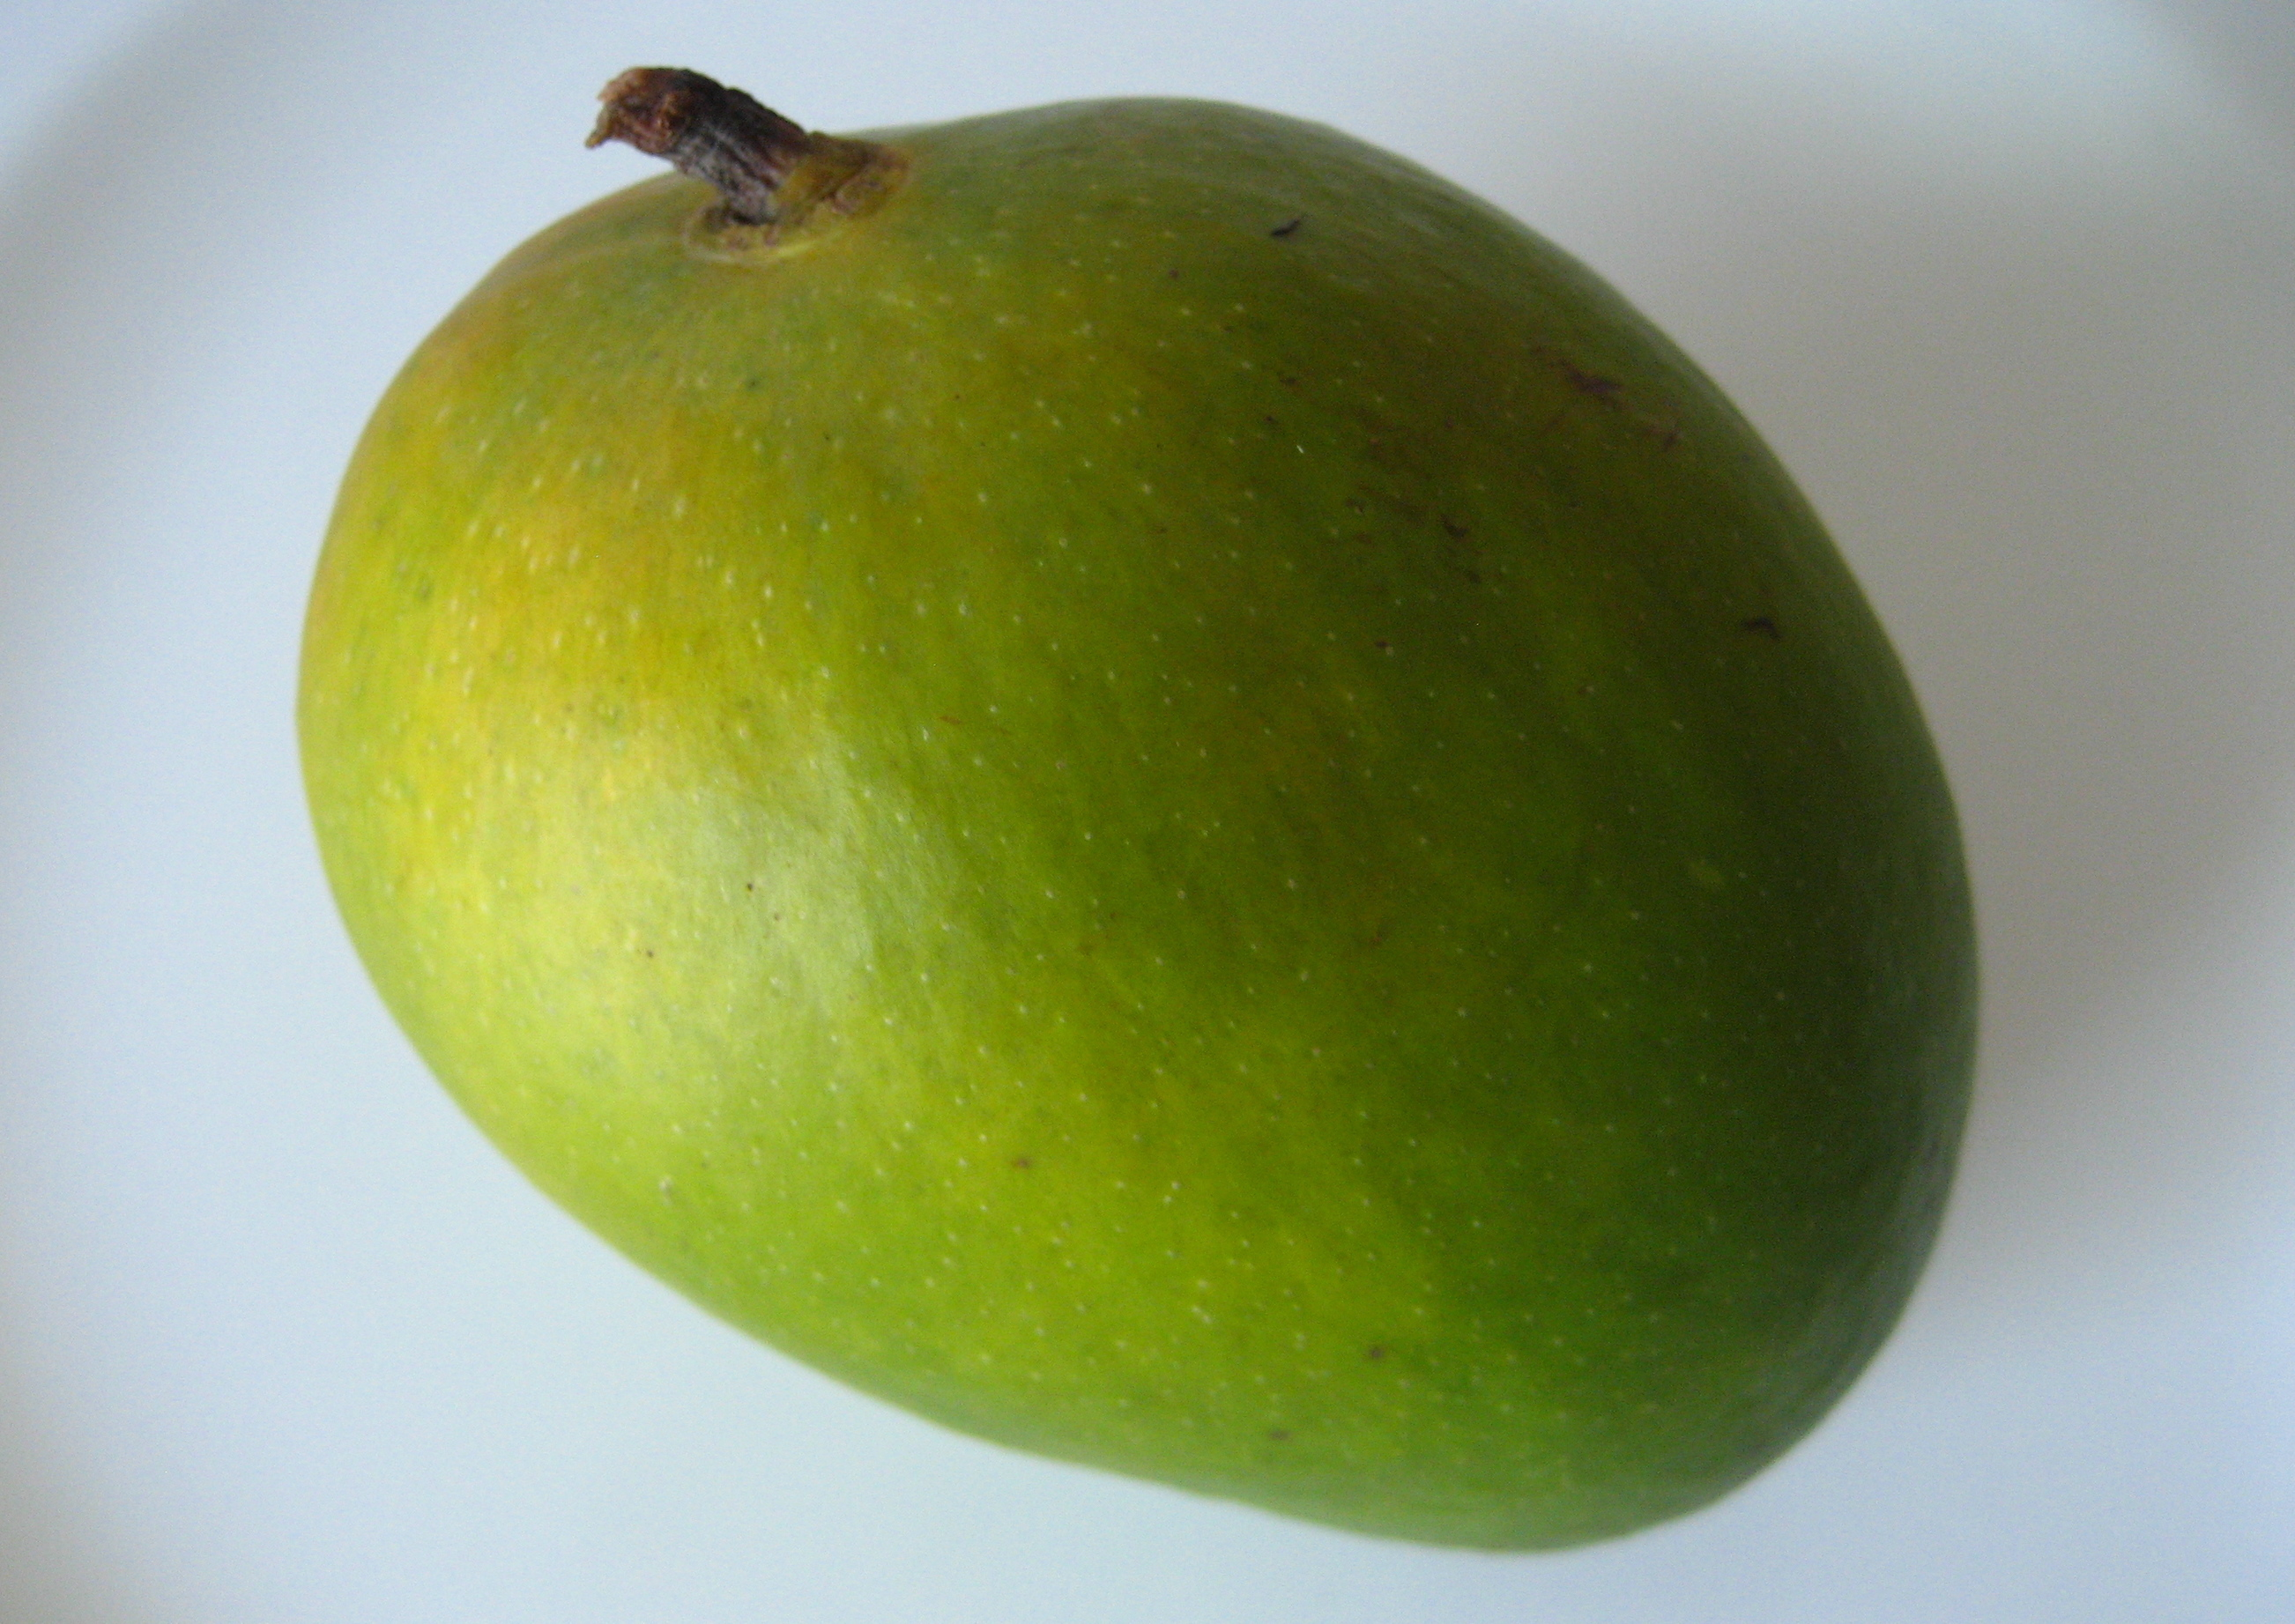 It's almost ripe.  Um, if something happens to me, please pick this culprit out of the lineup.